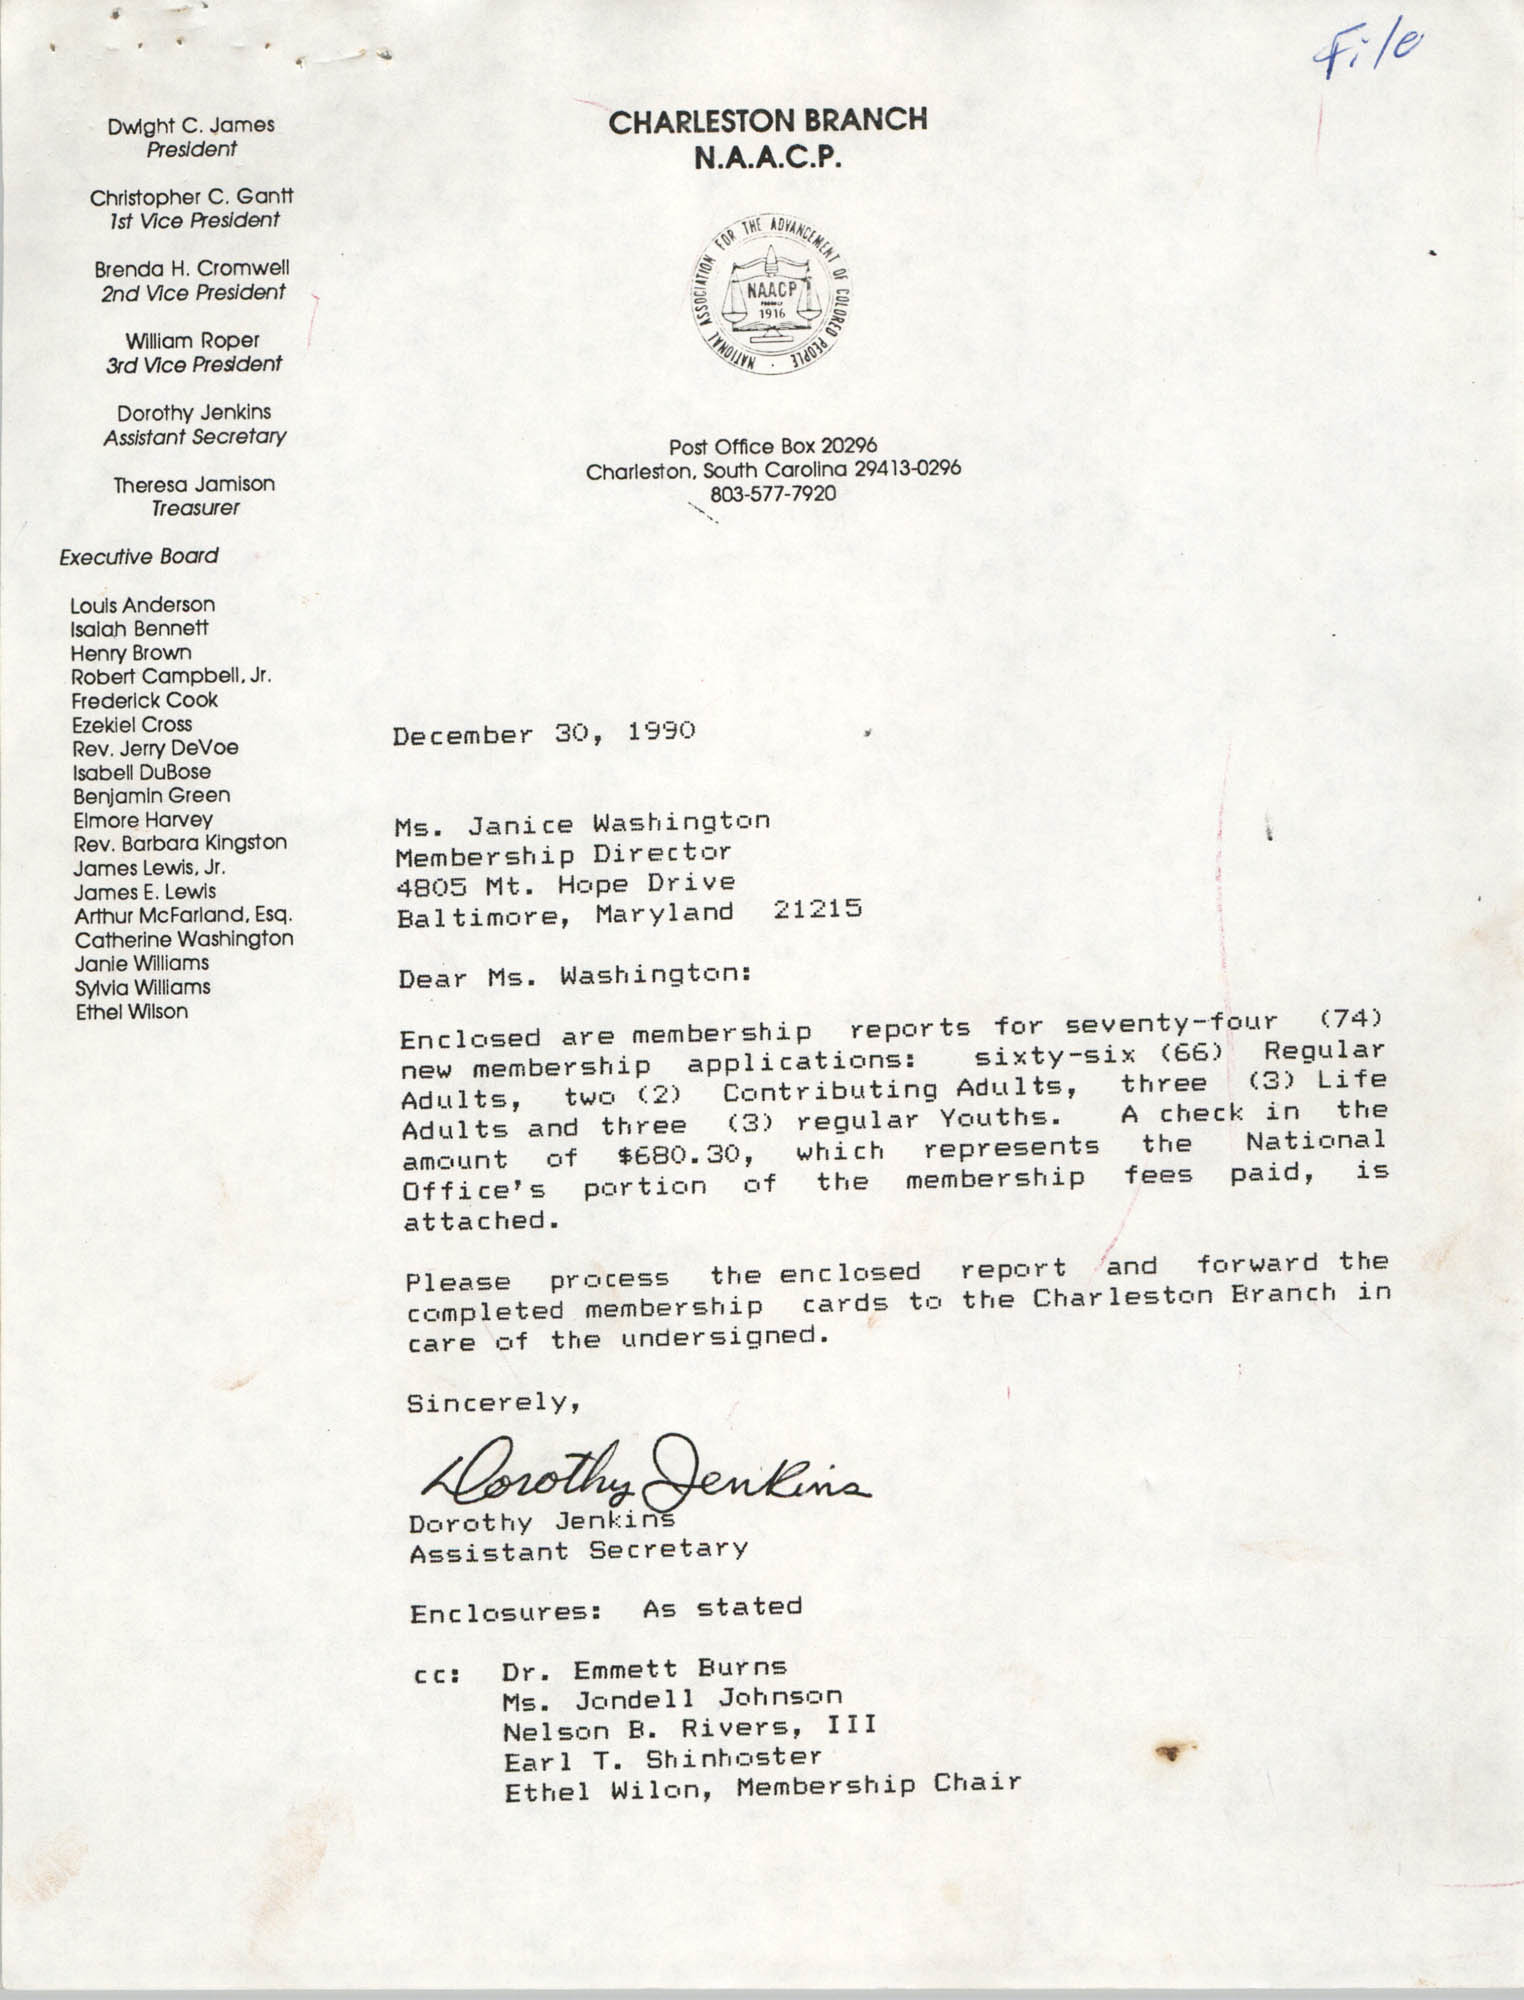 Letter from Dorothy Jenkins to Janice Washington, NAACP, December 30, 1990